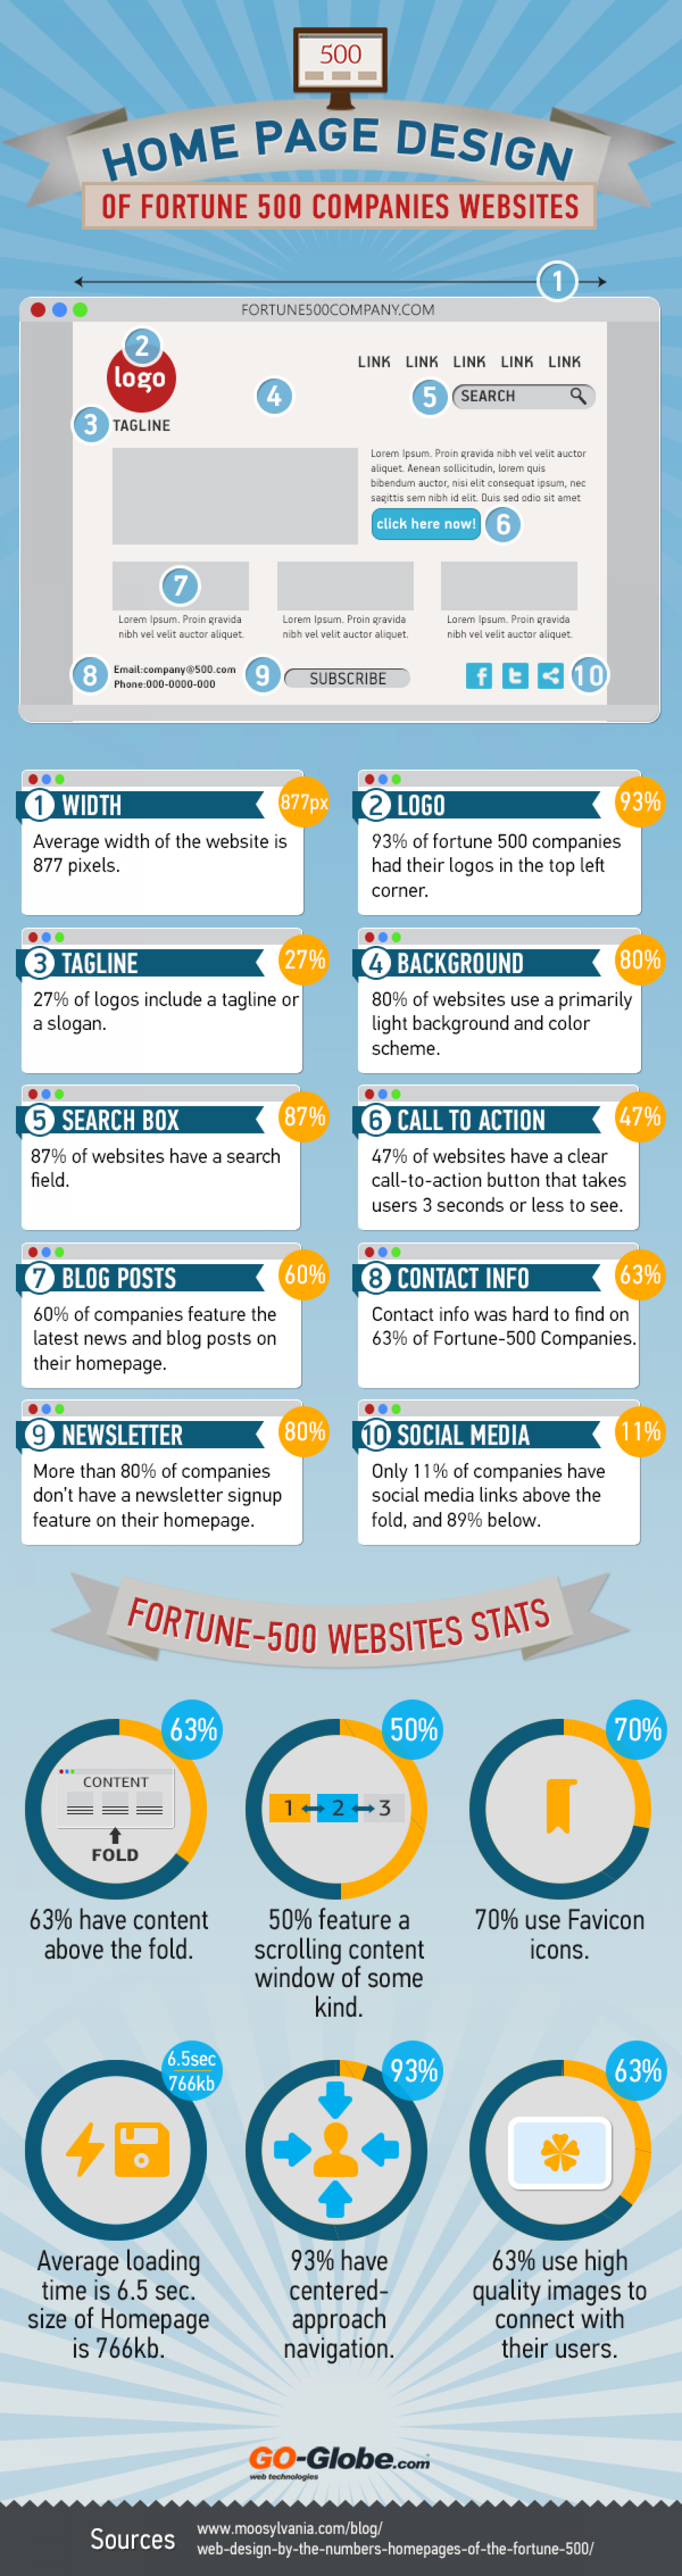 Web Design Trends of Fortune 500 Companies Infographic